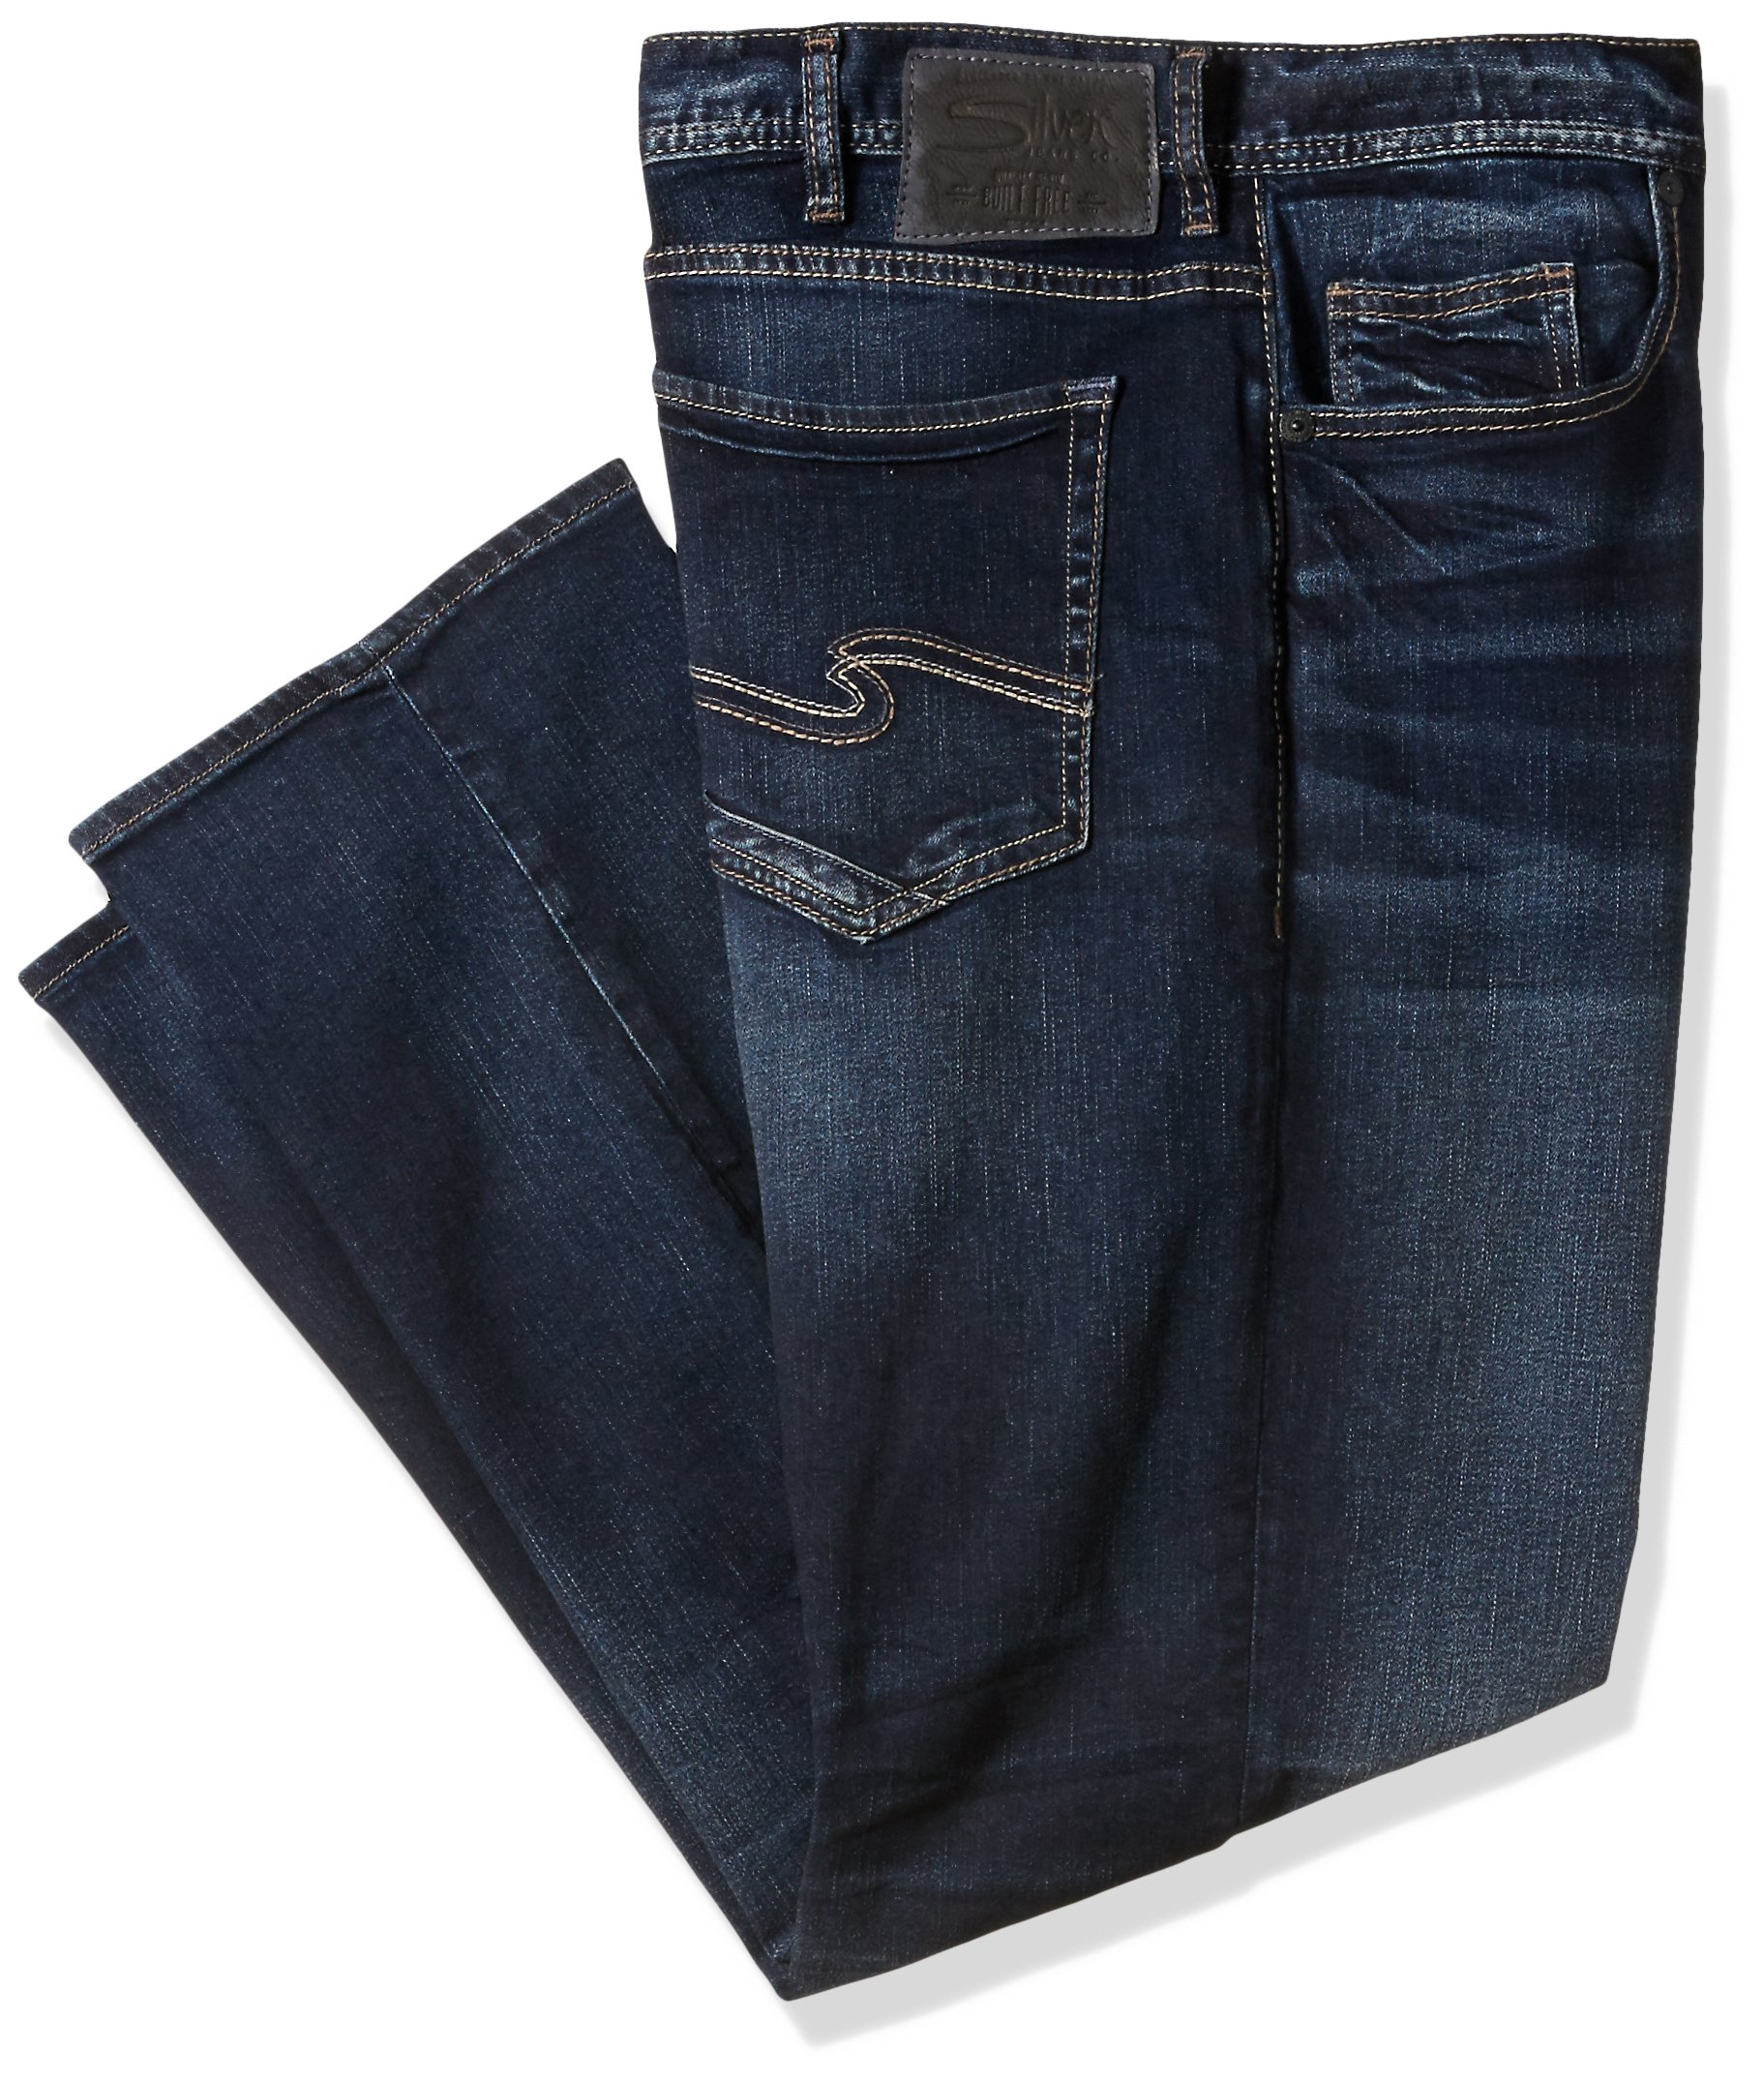 Silver Jeans Men's Big and Tall Grayson Easy Fit Straight Leg, Dark Vintage Wash, 44 x 36